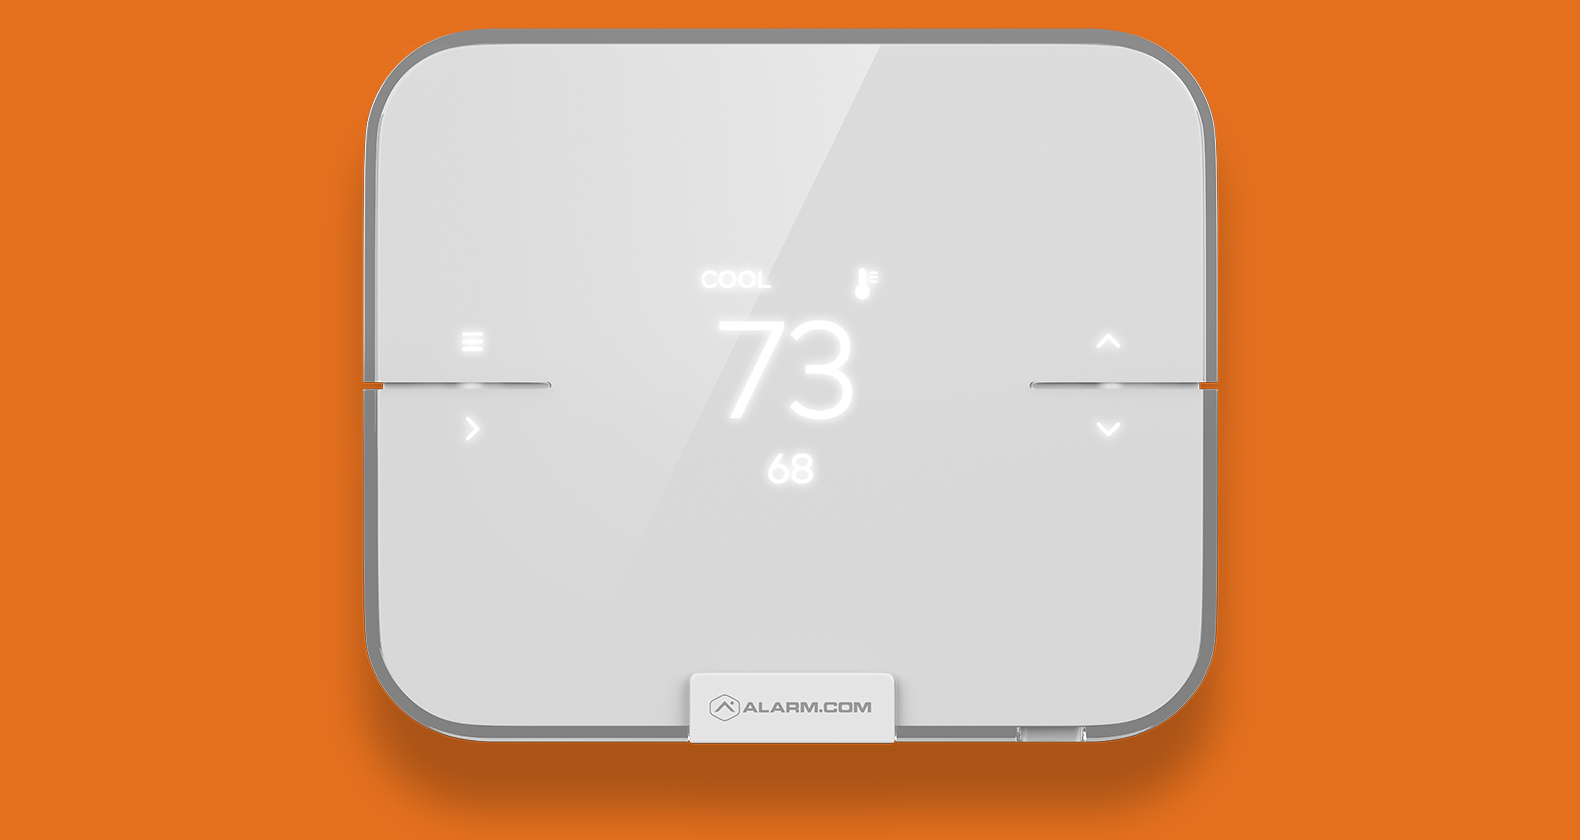 Alarm.com New Smart Thermostat.jpg